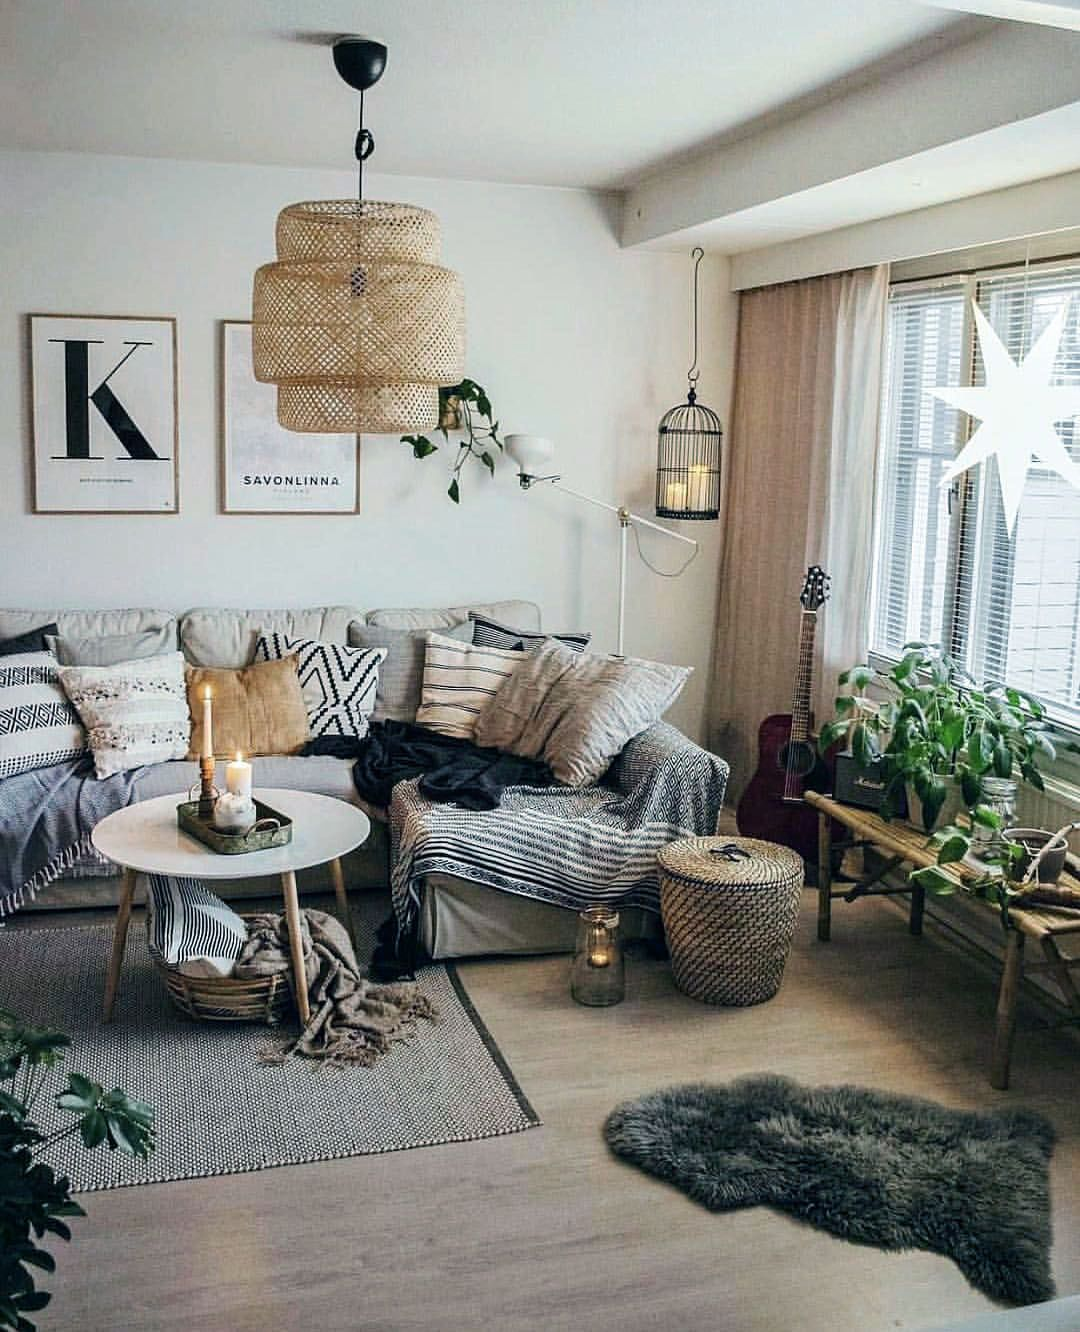 Off White Living Rooms Are Breathtaking And Can Be Actually Far From Boring Living Room Scandinavian Interior Design Living Room Warm Scandinavian Design Living Room